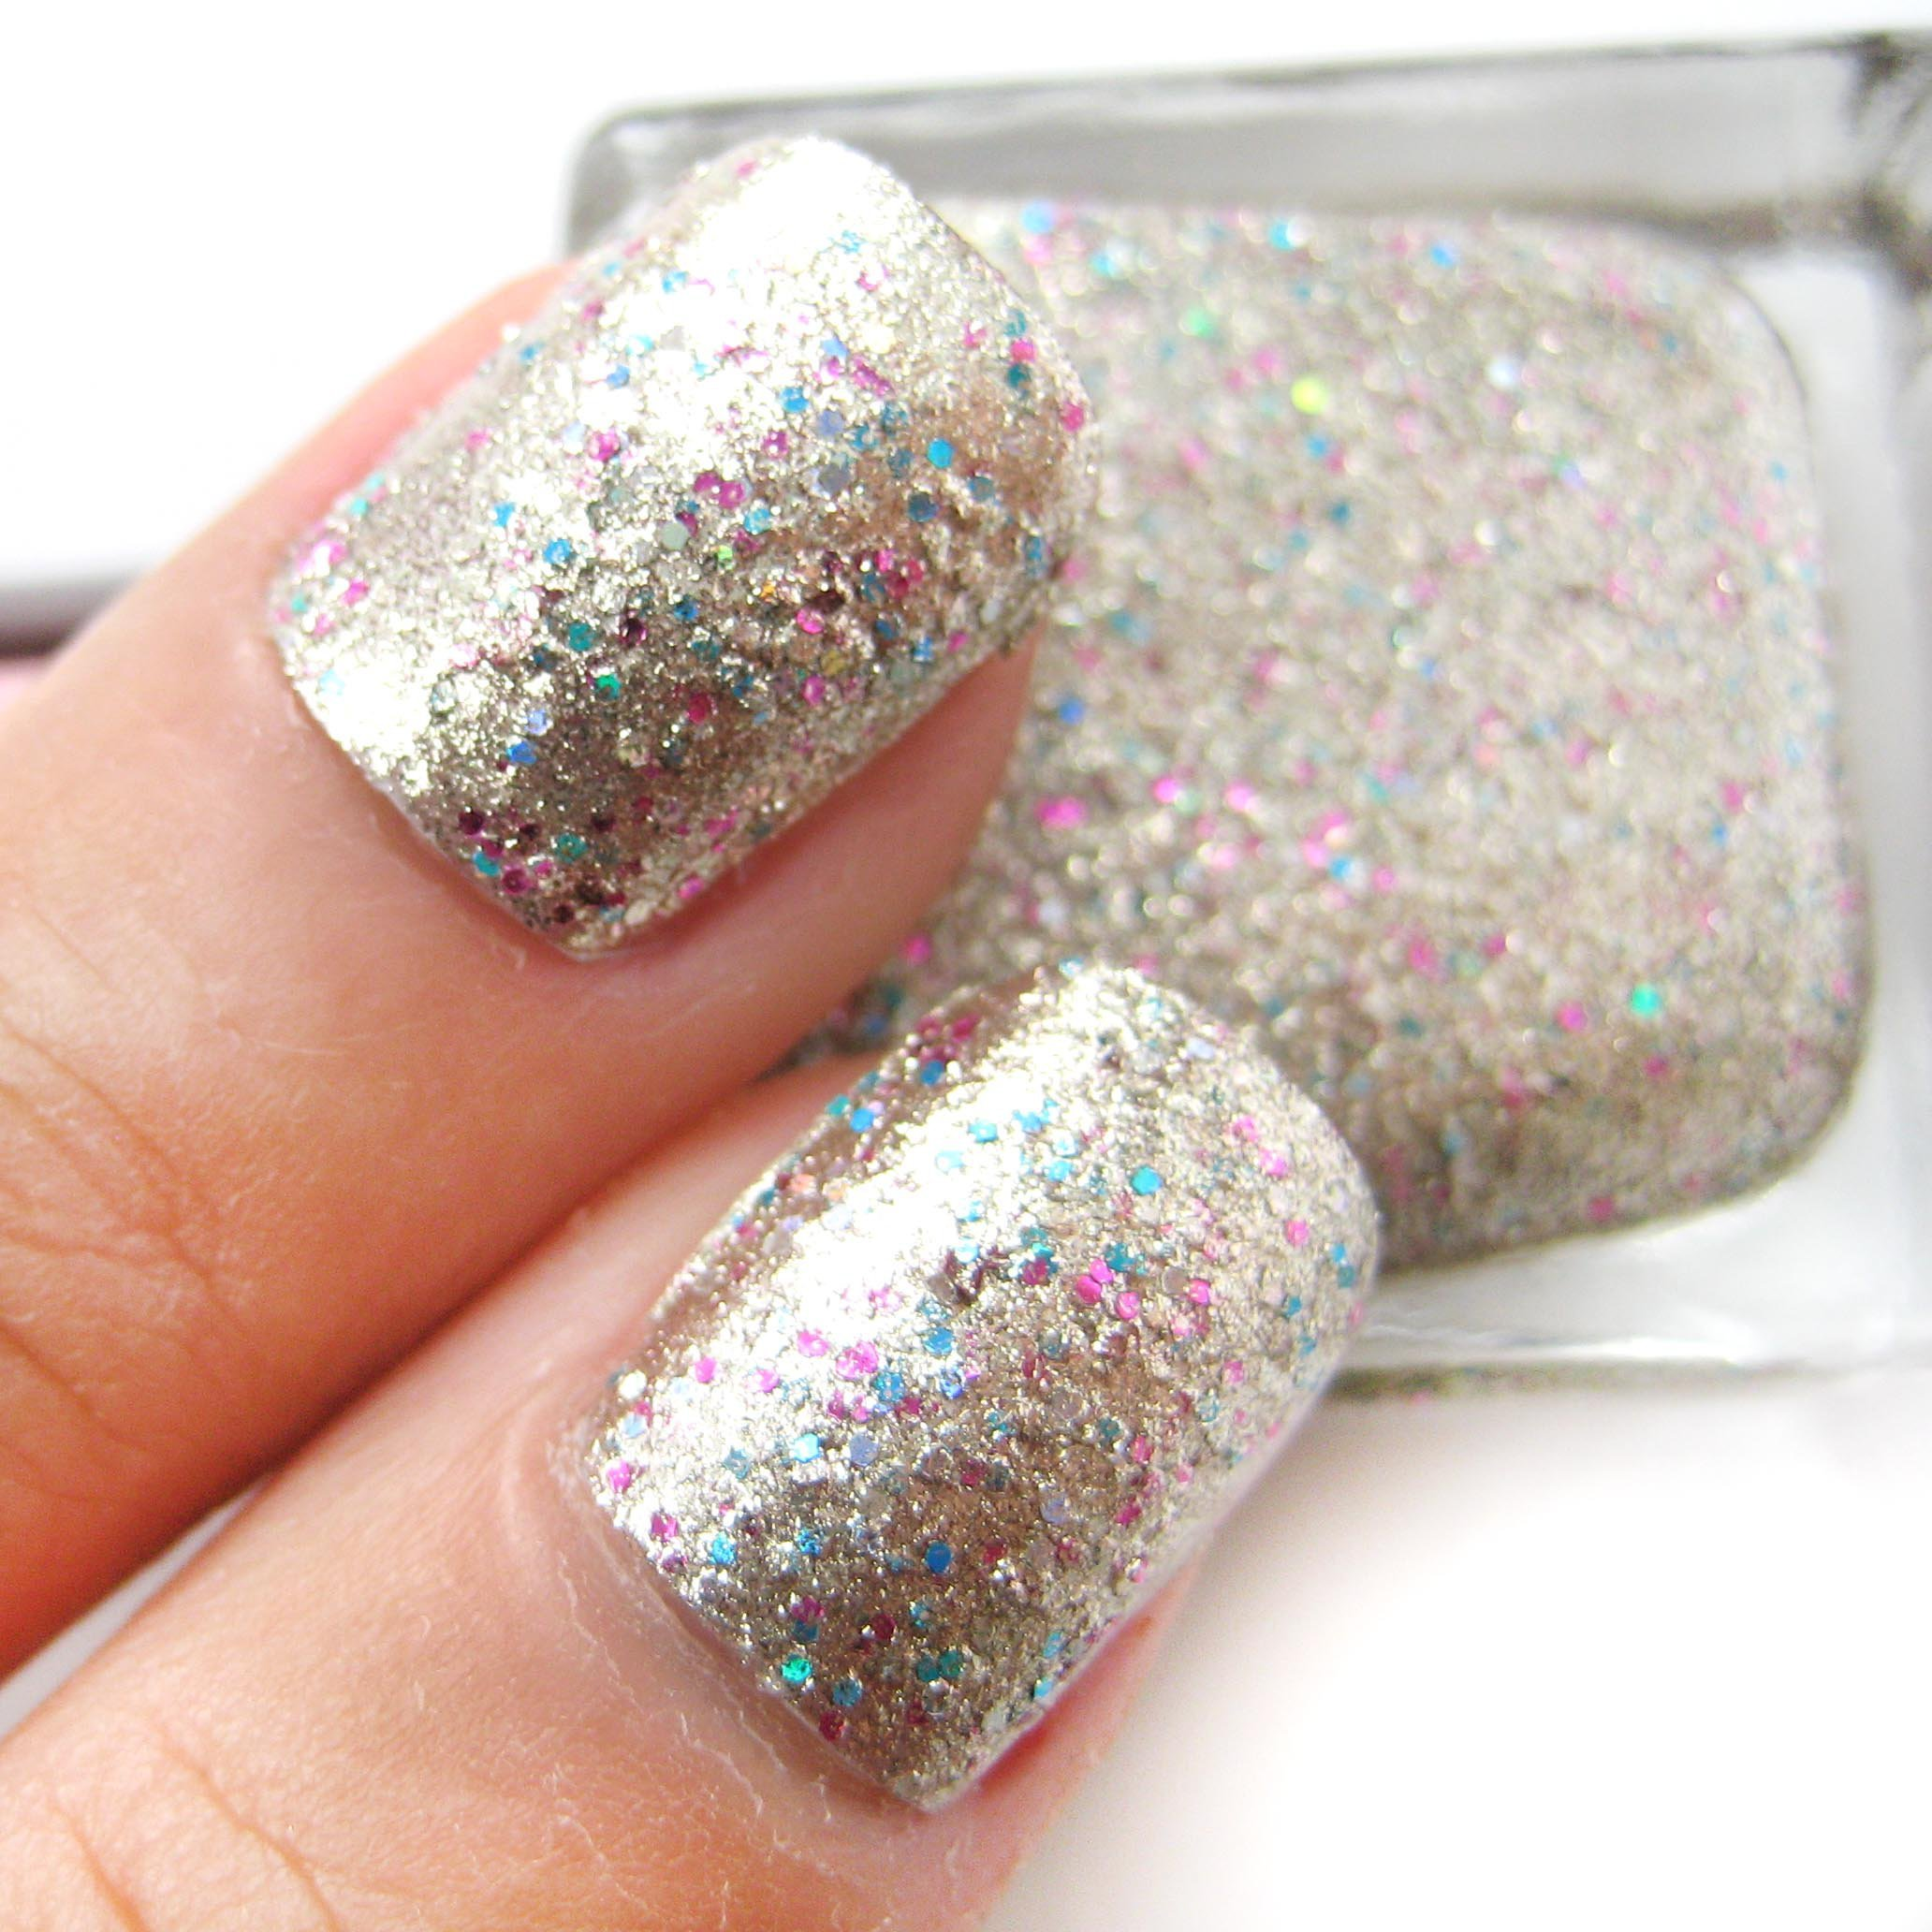 Pink And Blue Glitter Nail Polish: Gold Base With Pink And From Nailartsupplies On